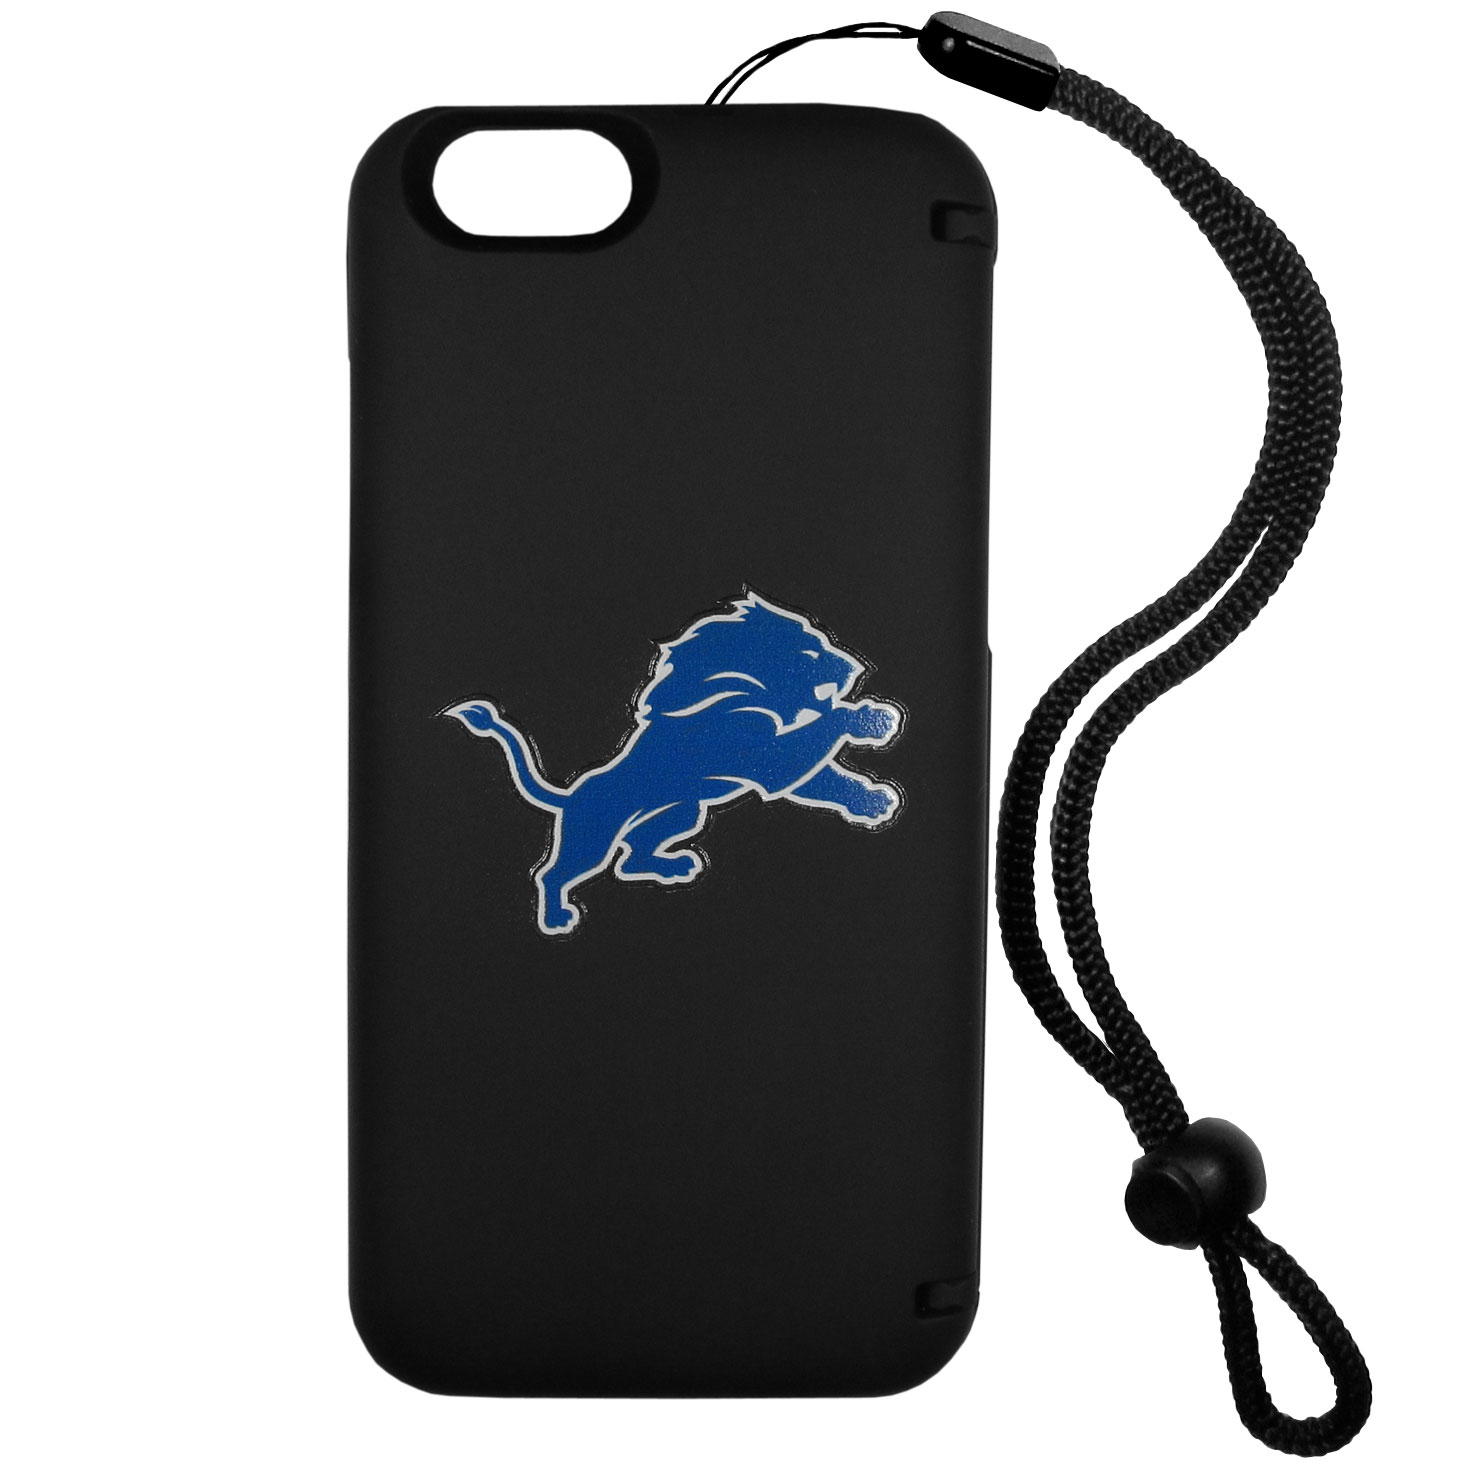 Detroit Lions iPhone 6 Plus Everything Case - This case really does have everything but the kitchen sink! The hidden compartment lets you keep your cards, money and tickets to the big game safe and secure and has a compact mirror so you can make sure your game face is ready to go. It also comes with a kickstand to make chatting and watching videos a breeze. The wrist strap allows you to travel with ease with your everything case. If that's not enough, it also comes with the Detroit Lions logo printed in expert detail on the front.